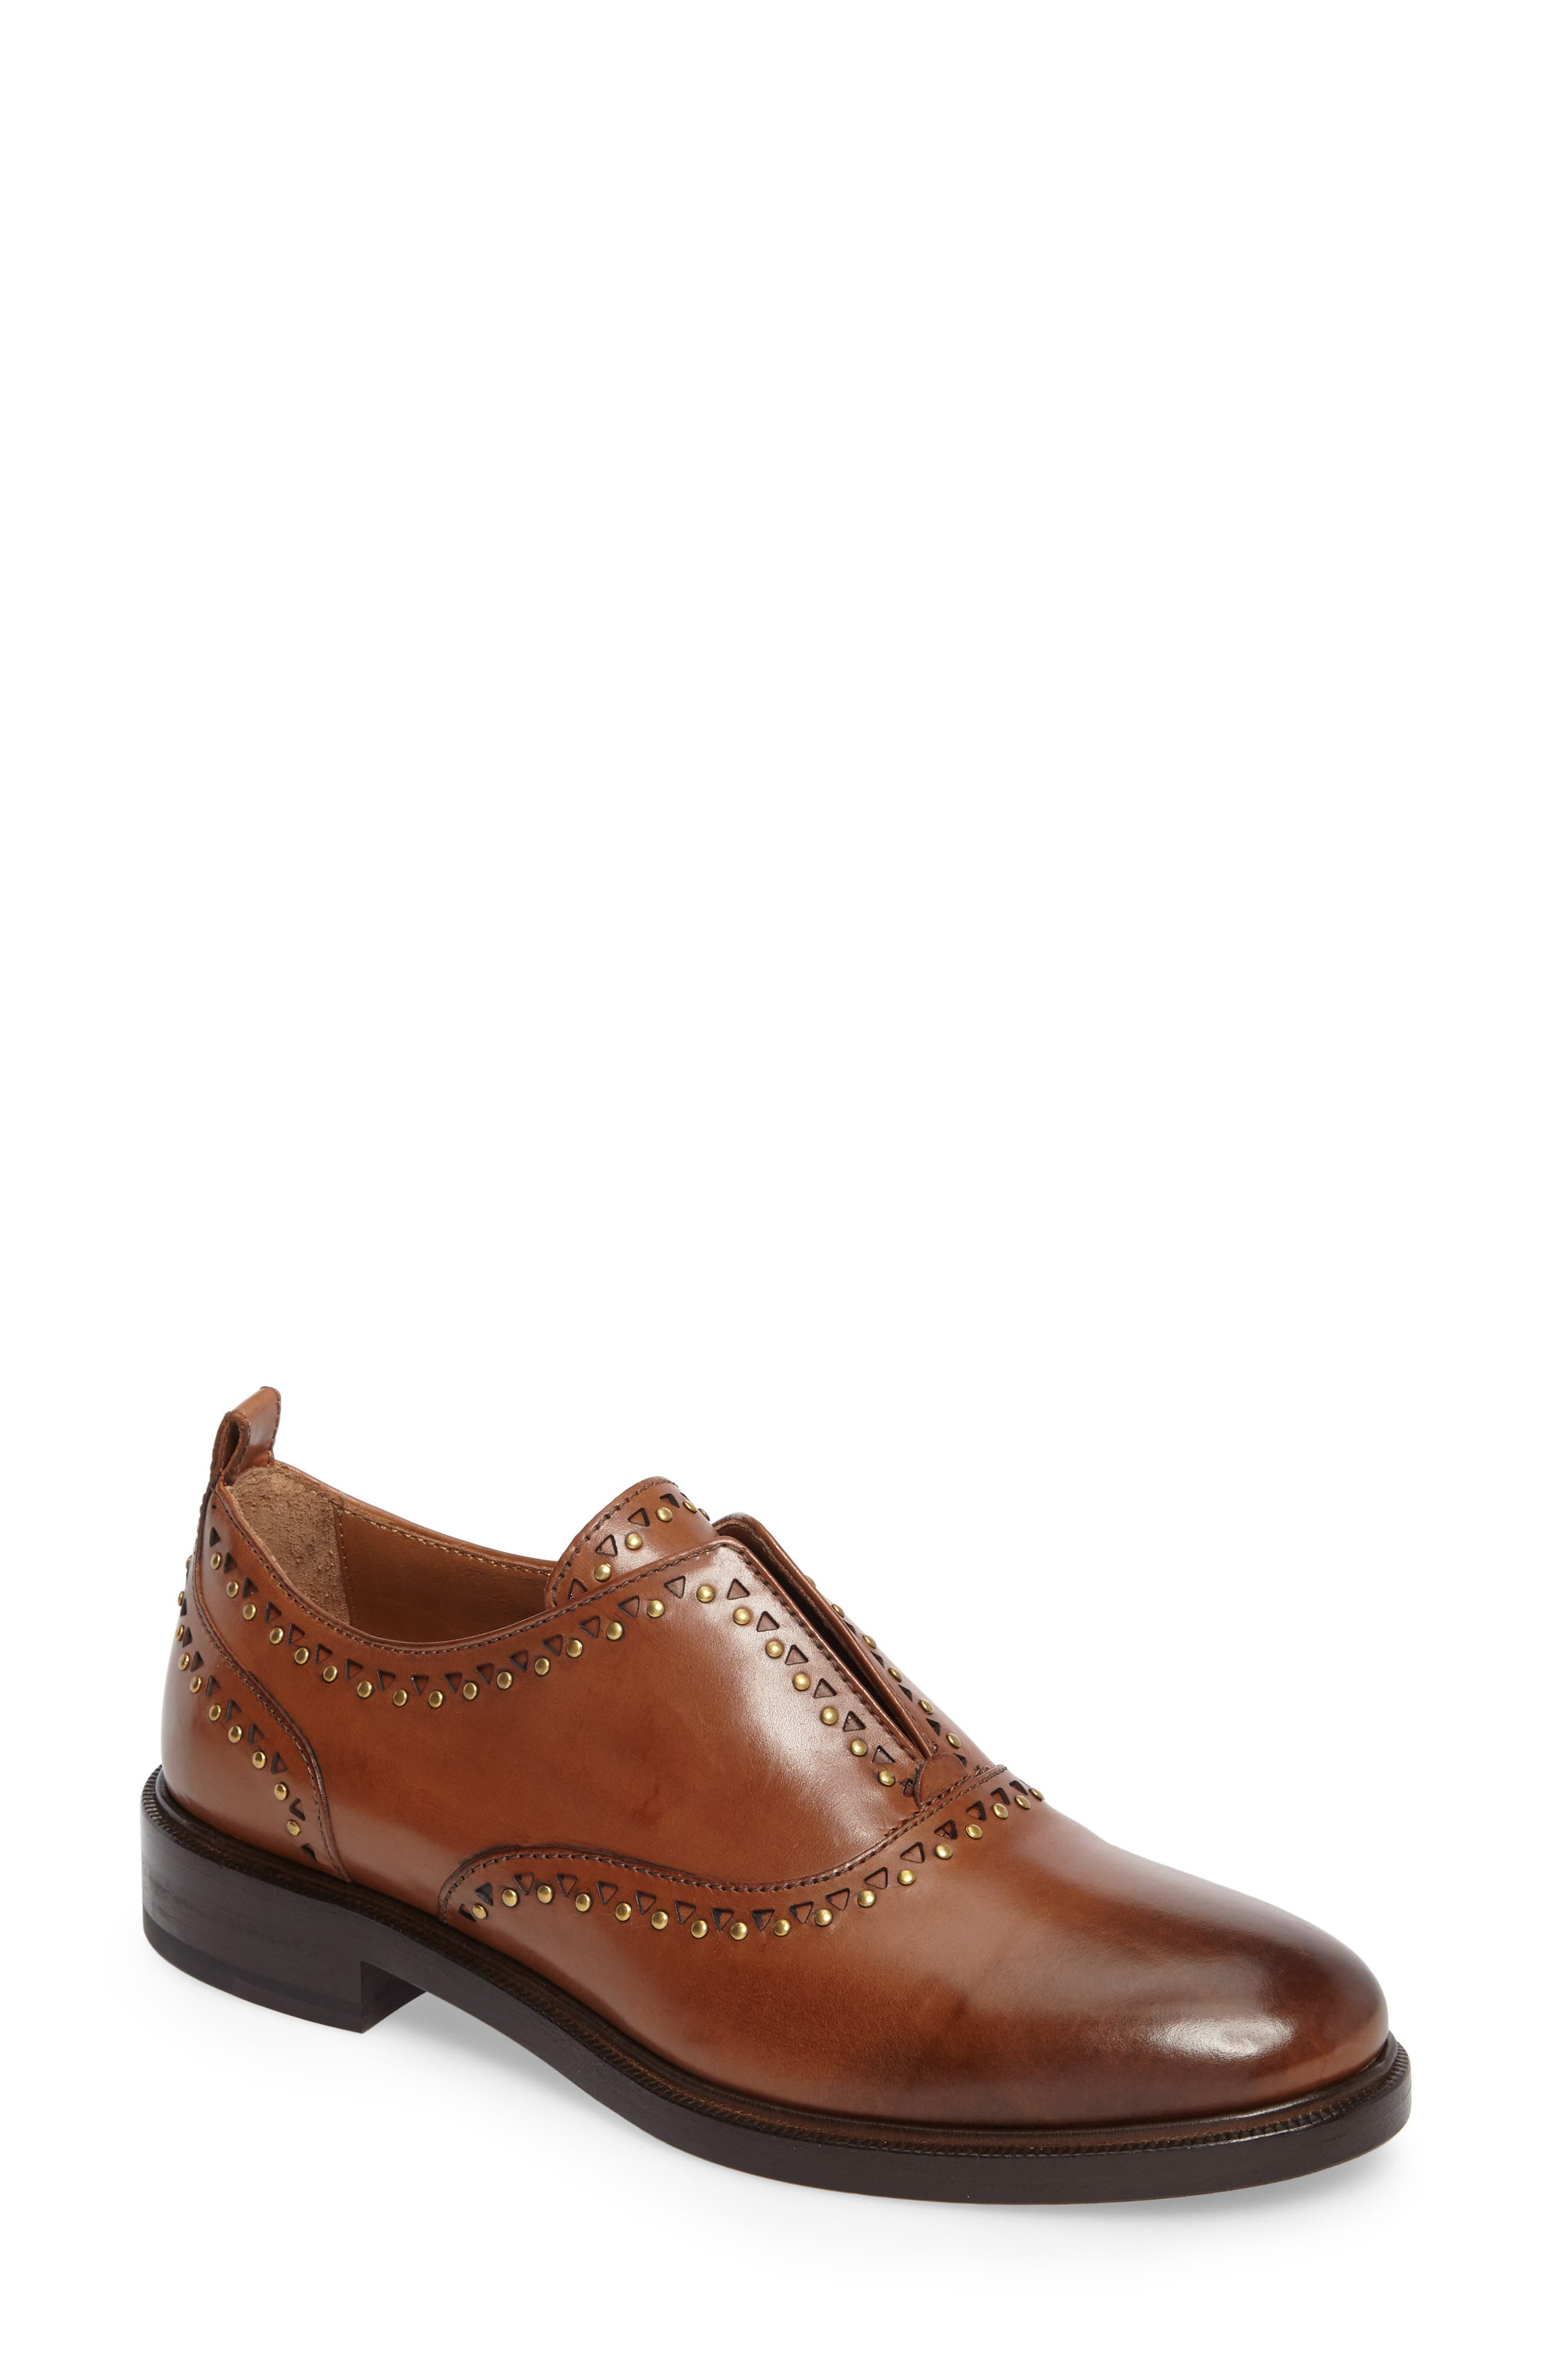 Alternate Image 1 Selected - Frye Annie Studded Oxford (Women)